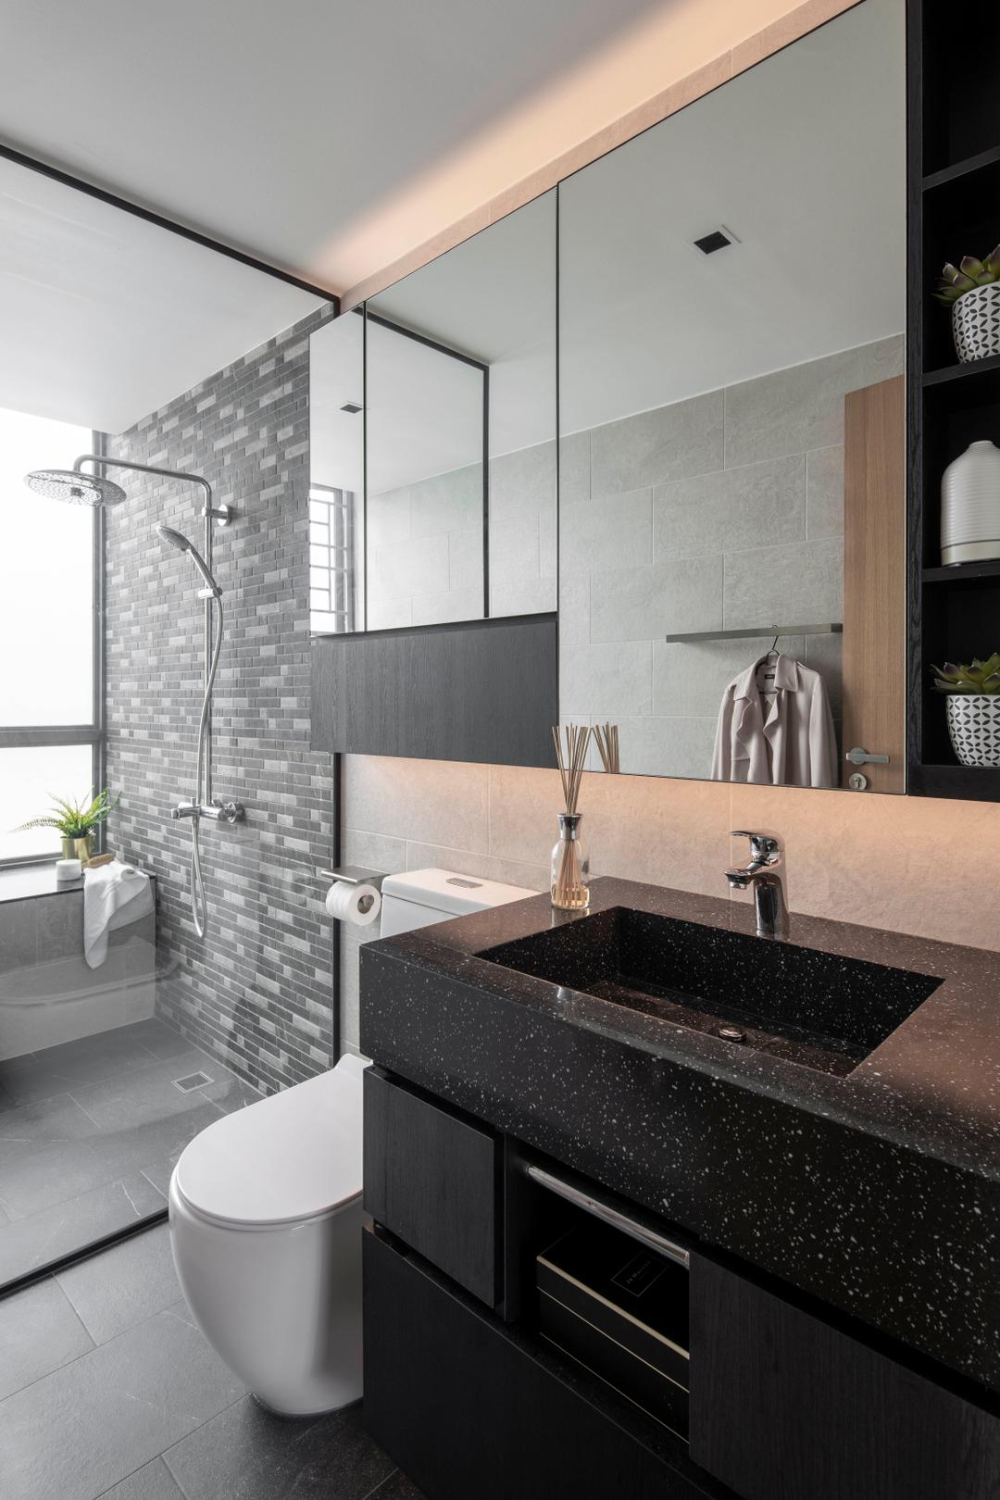 Check Out This Contemporary Style Condo Bathroom And Other Similar Styles On Qanvast In 2020 Condo Bathroom Bathroom Lighted Bathroom Mirror